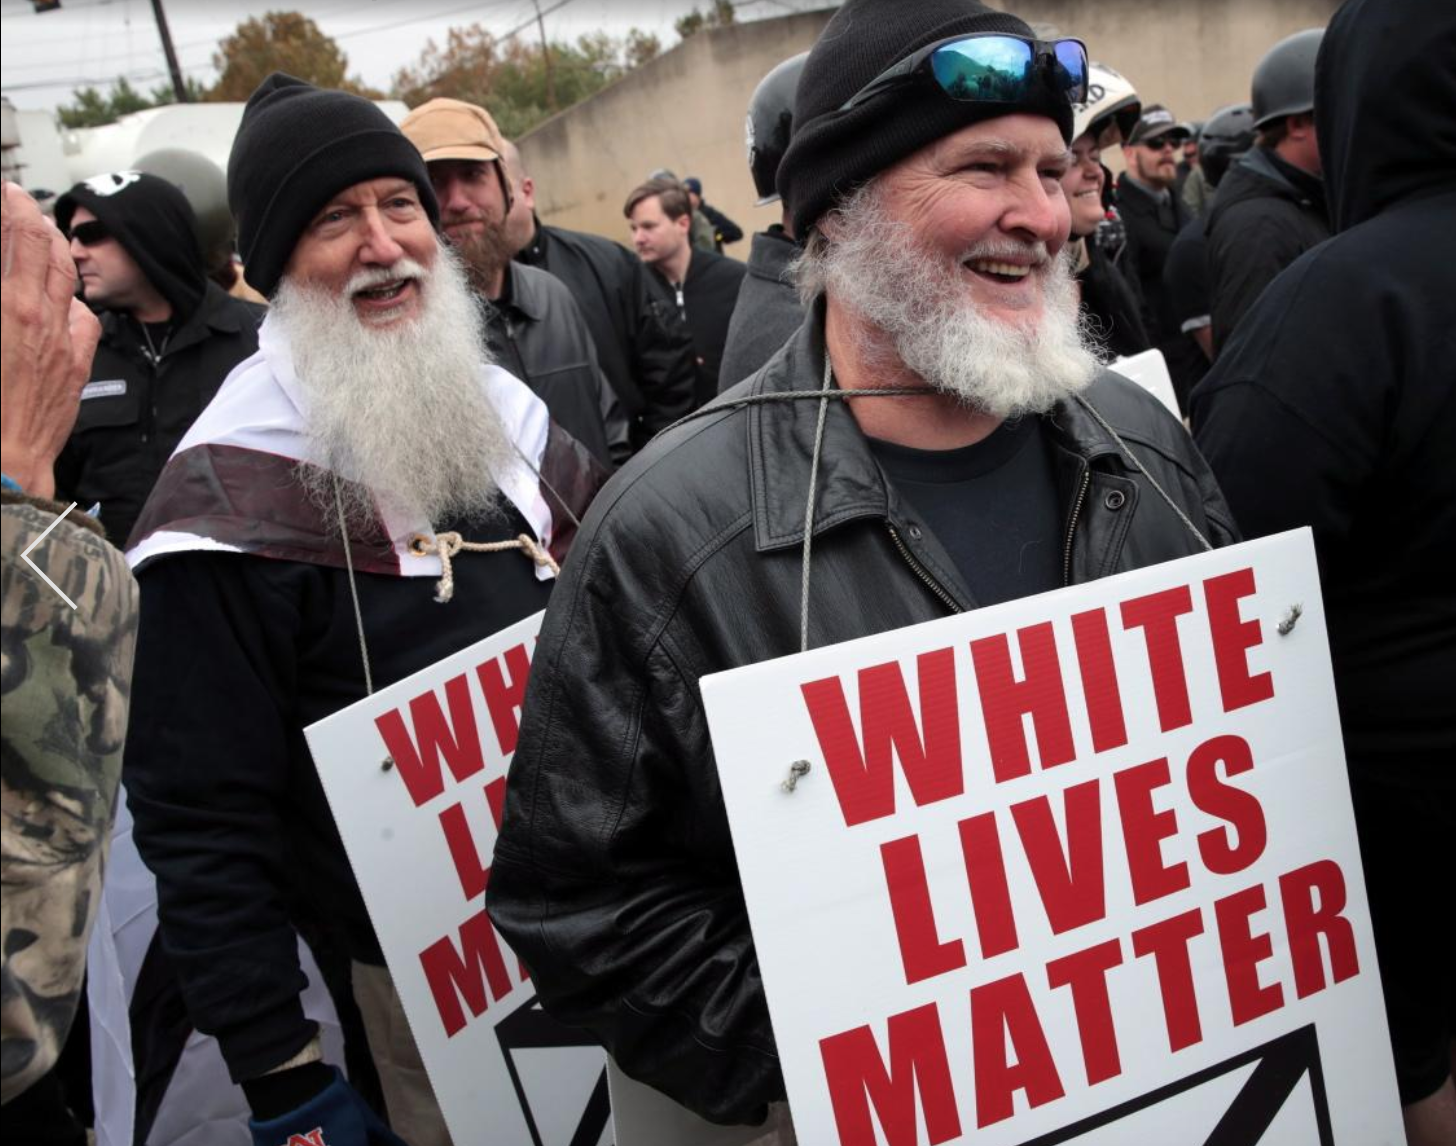 Protesters hold up signs displaying the White Lives Matter slogan.